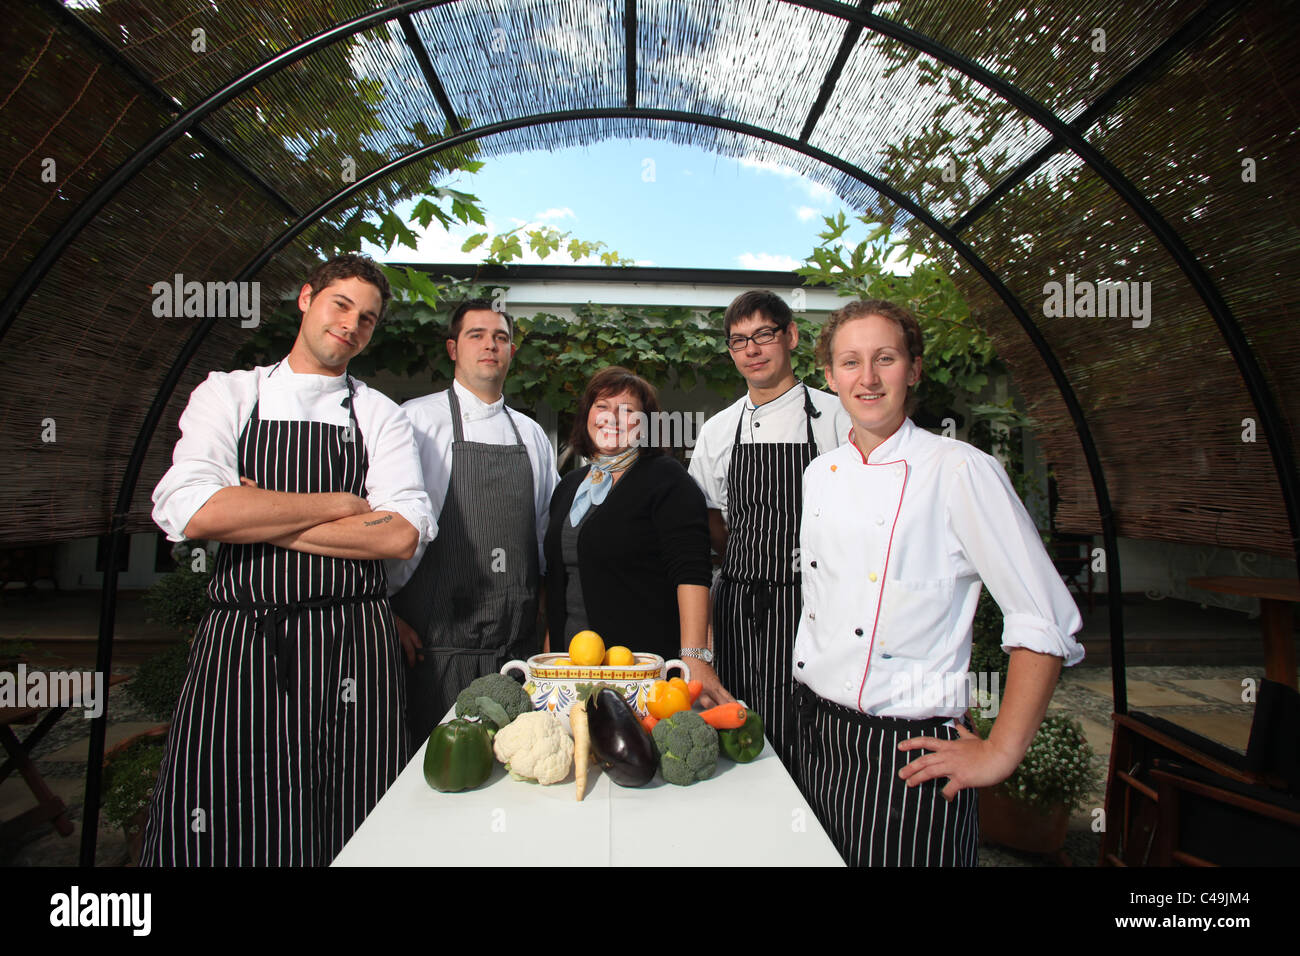 Therese Herzog with her team of chefs at Herzog Winery, Blenheim, New Zealand - Stock Image